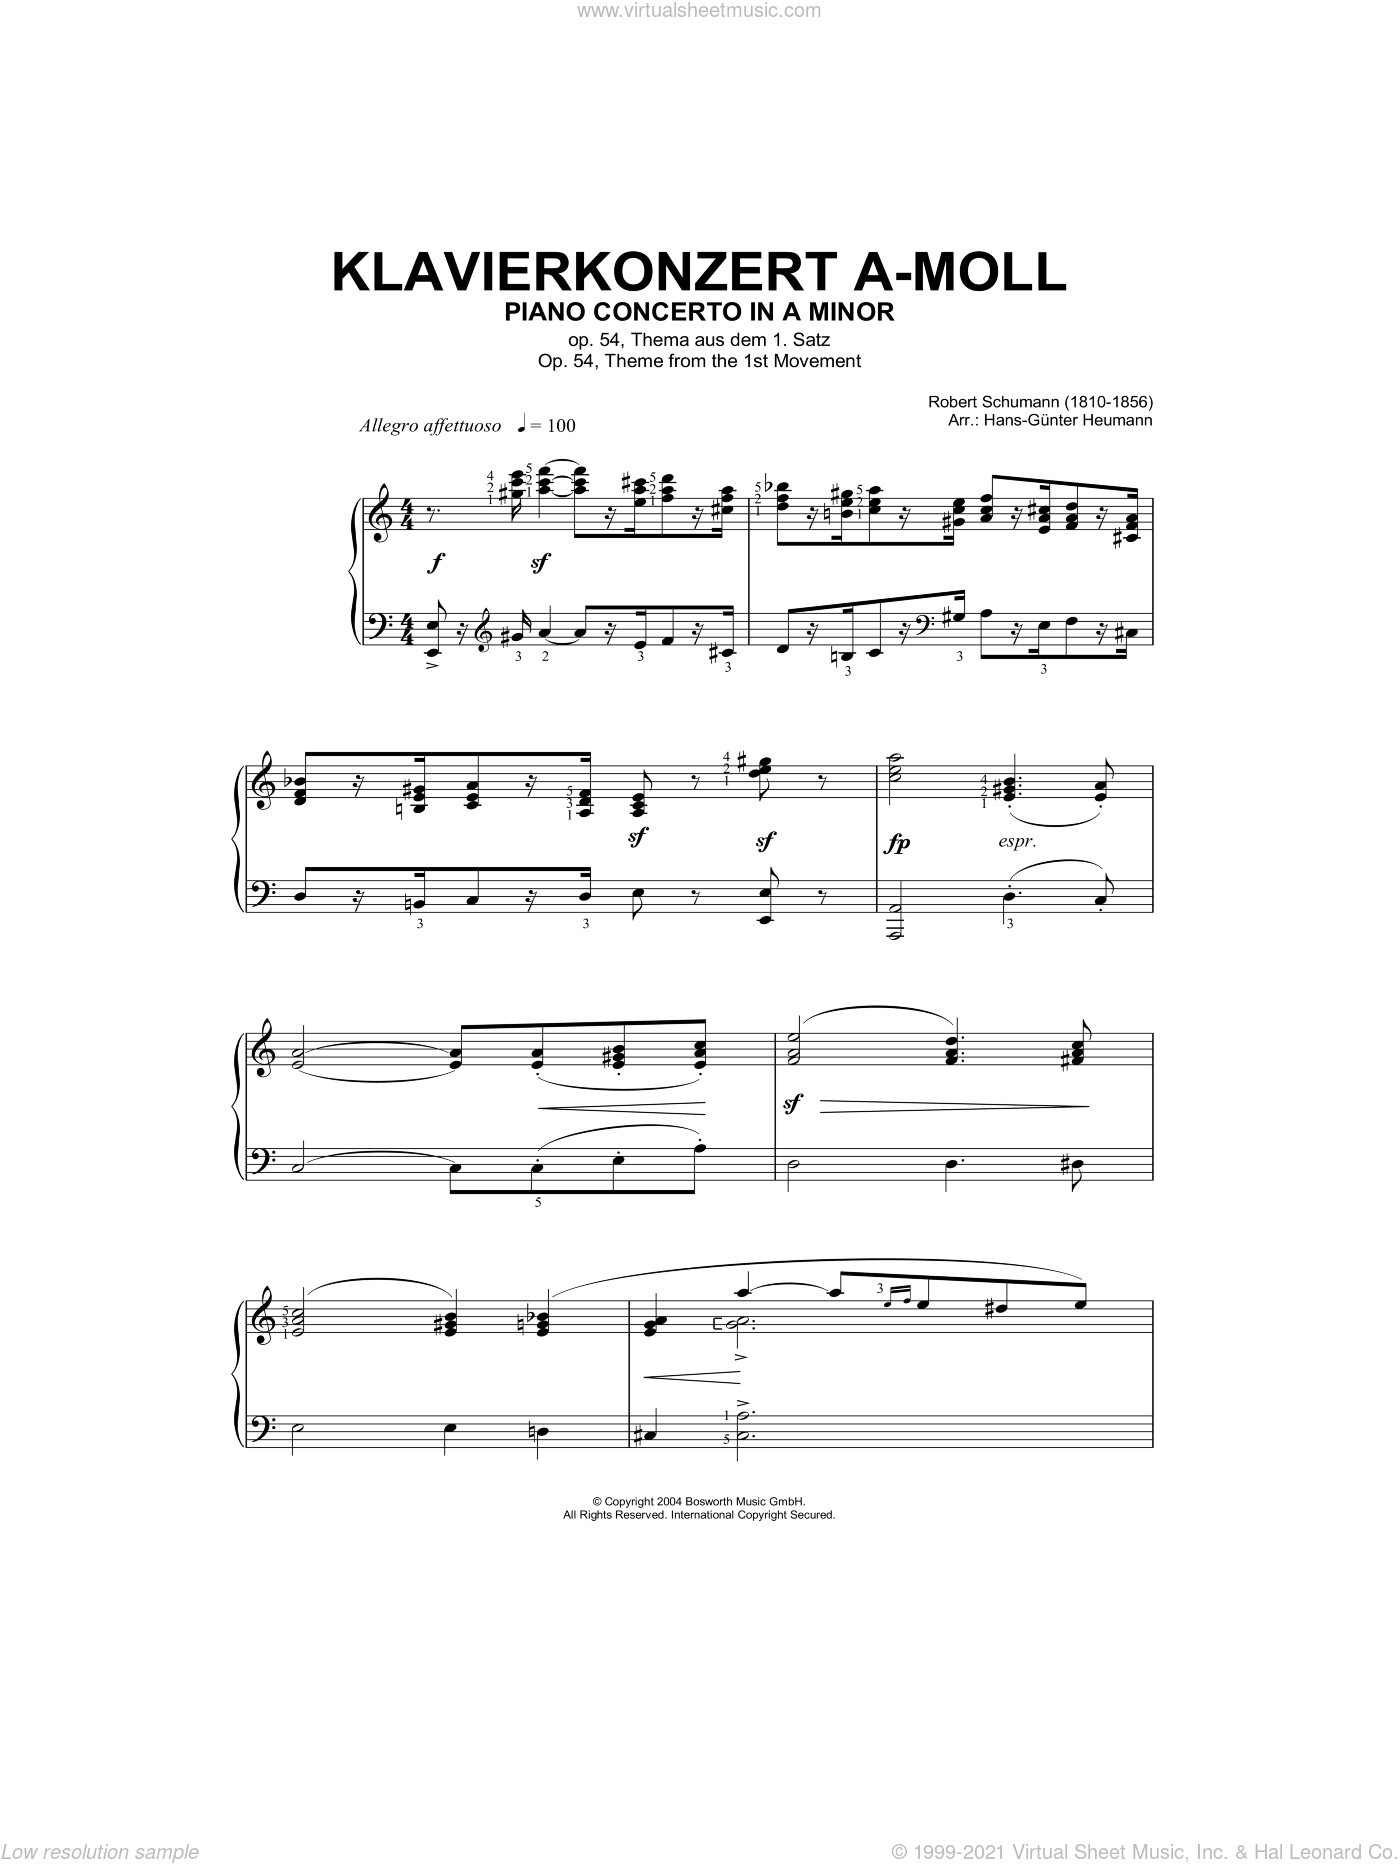 Piano Concerto In A Minor, Op.54, theme from the First Movement sheet music for piano solo by Robert Schumann